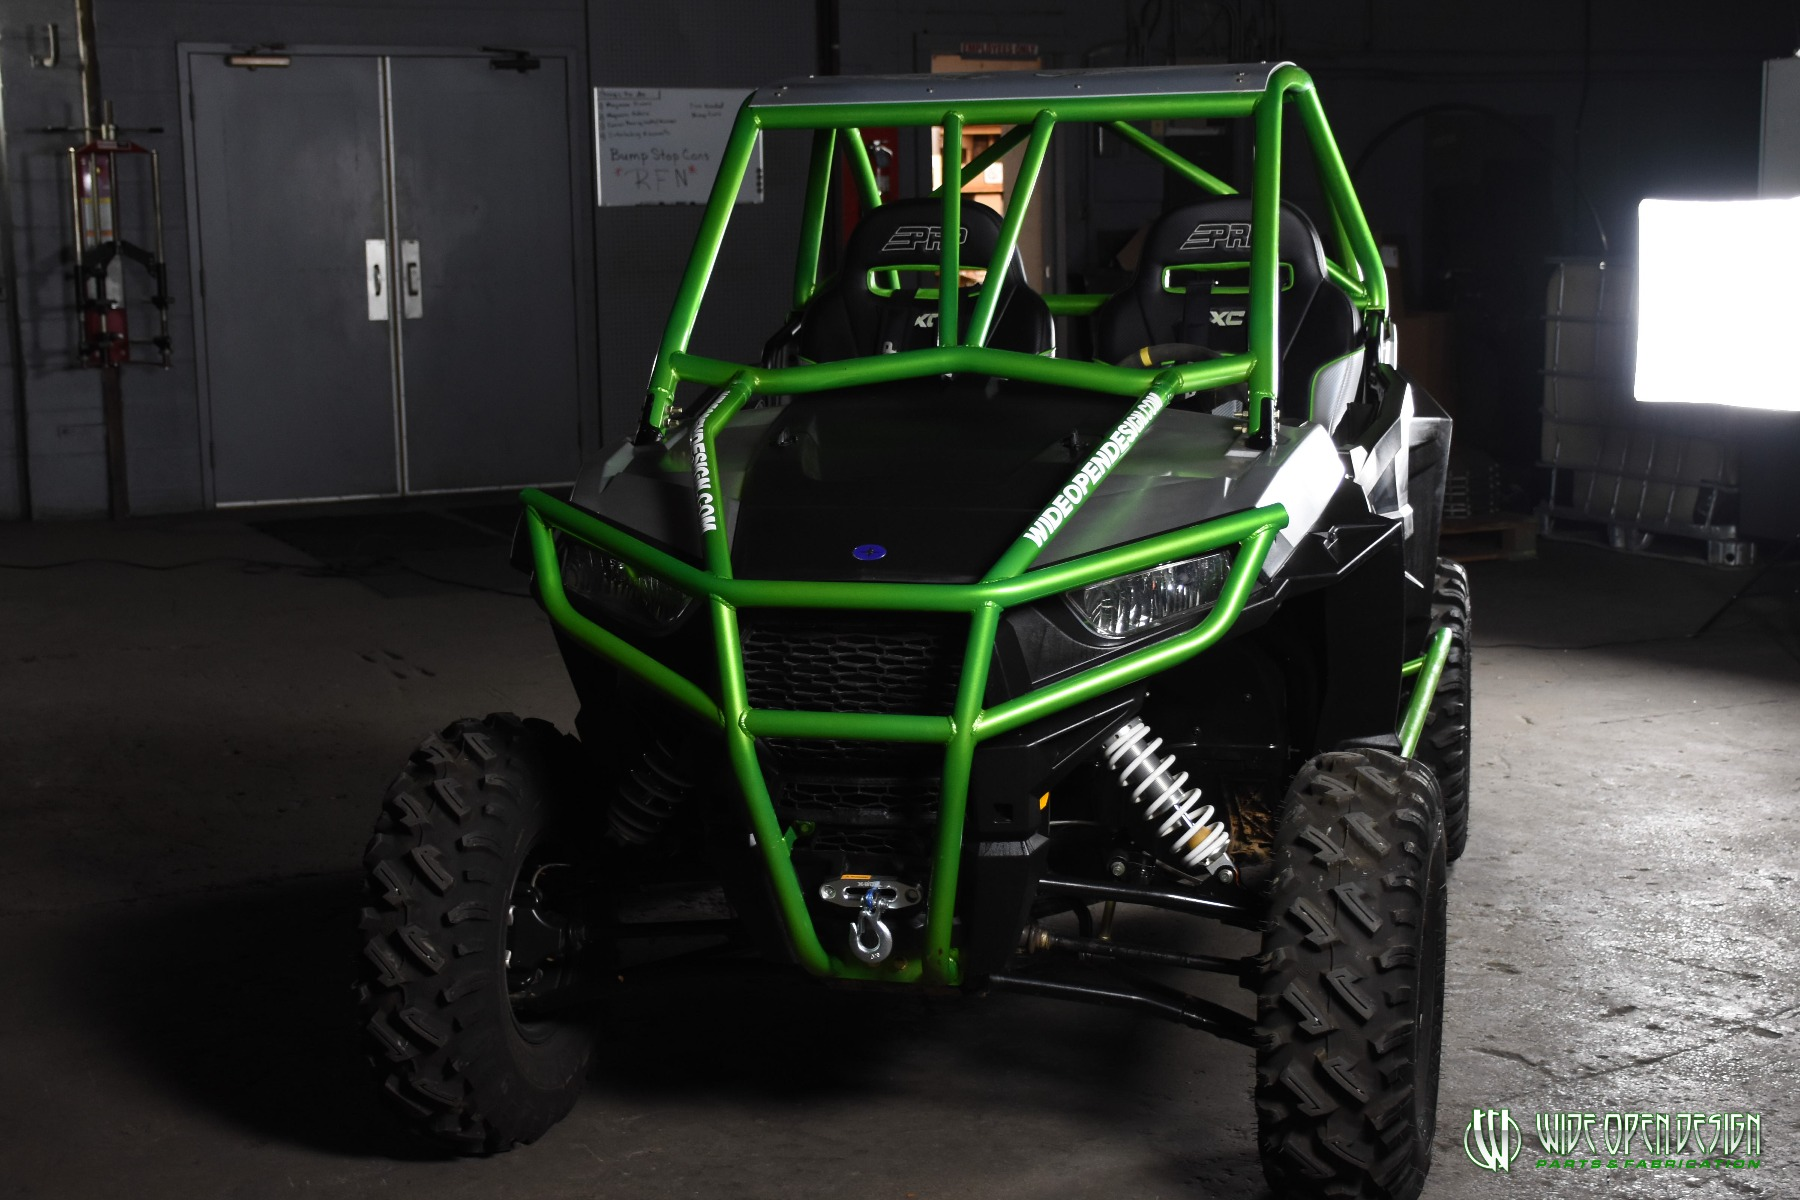 Jason's 1000s RZR with Wide Open Design Rolled Roof Cage, Front Bumper with Tie In, and Rocker Guards 12